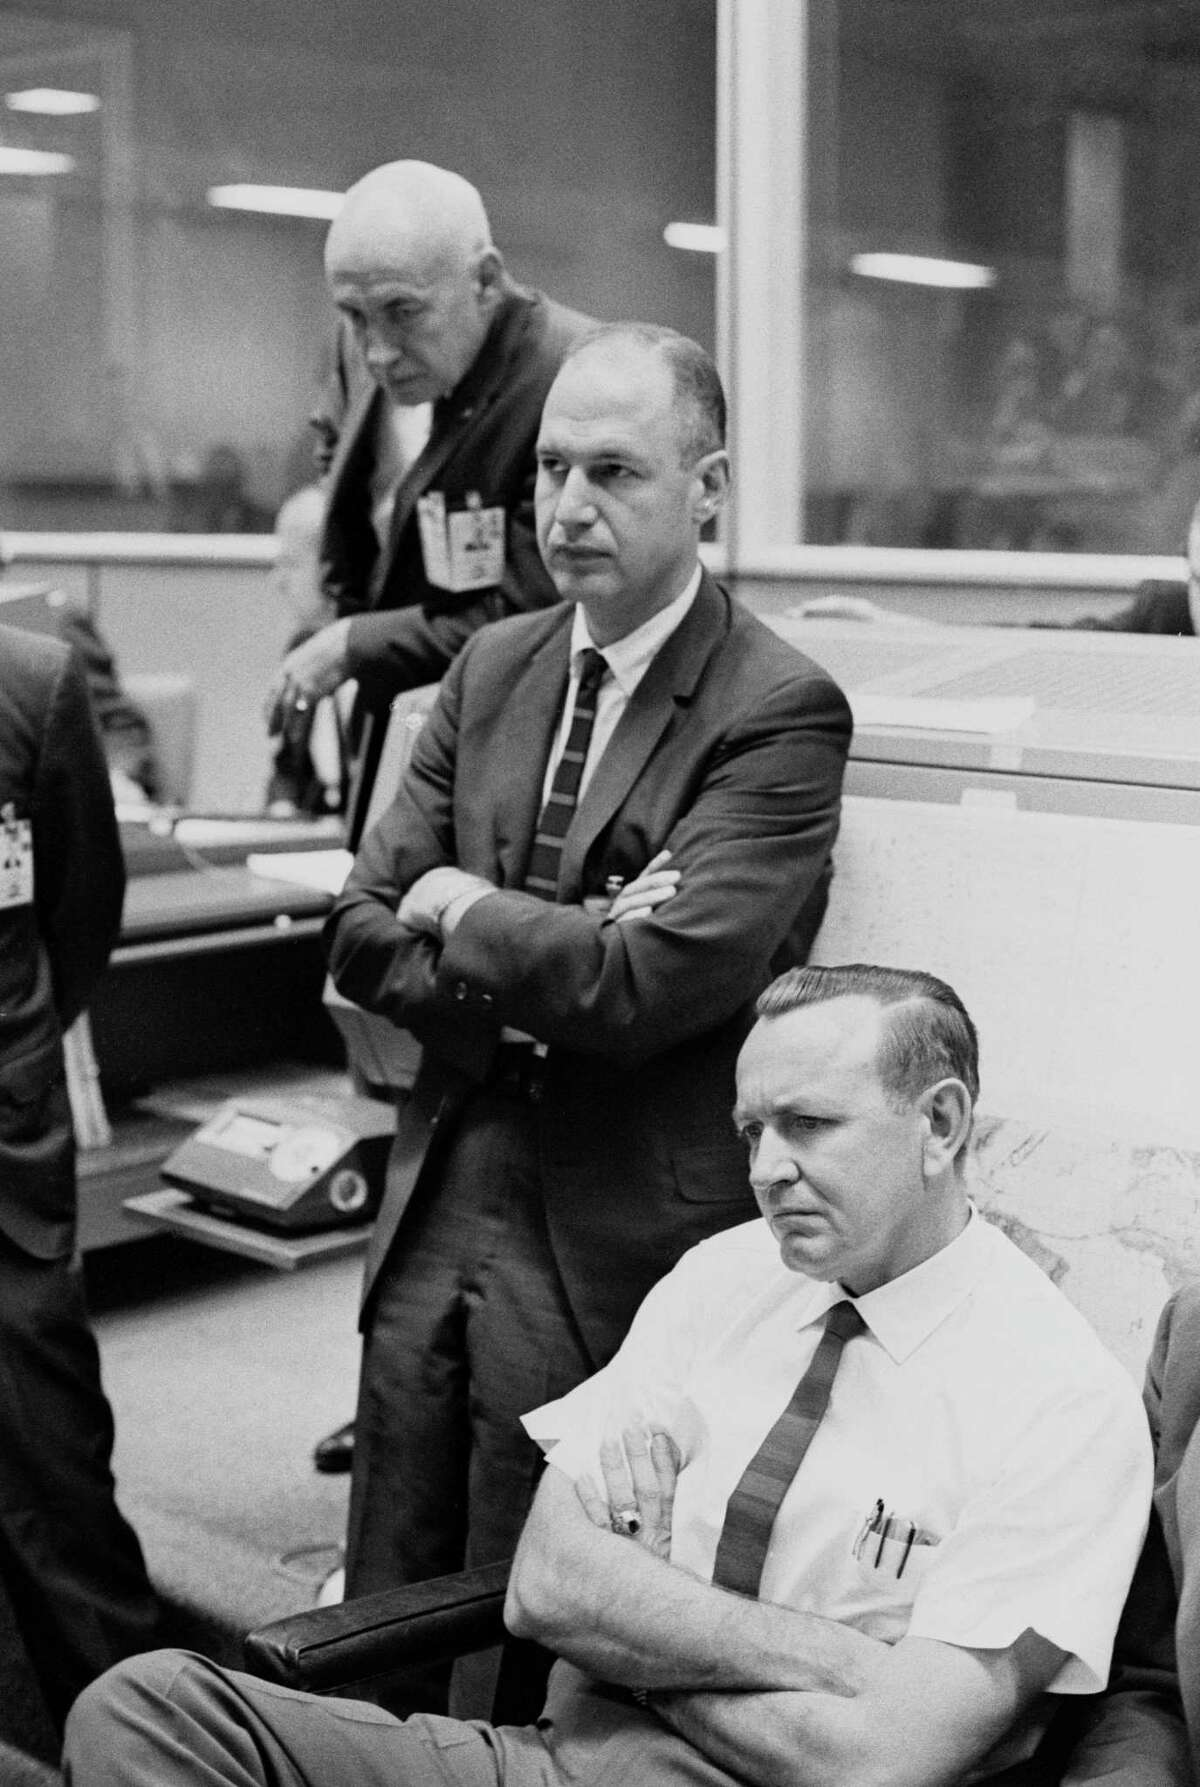 The faces of key officials register disappointment on Oct. 25, 1965 after the Gemini-Titan 6 mission was canceled due to the apparent failure of the unmanned Agena Target Vehicle to attain orbit. Shown, front to back, Robert R. Gilruth, George M. Low and Christopher C. Kraft Jr.